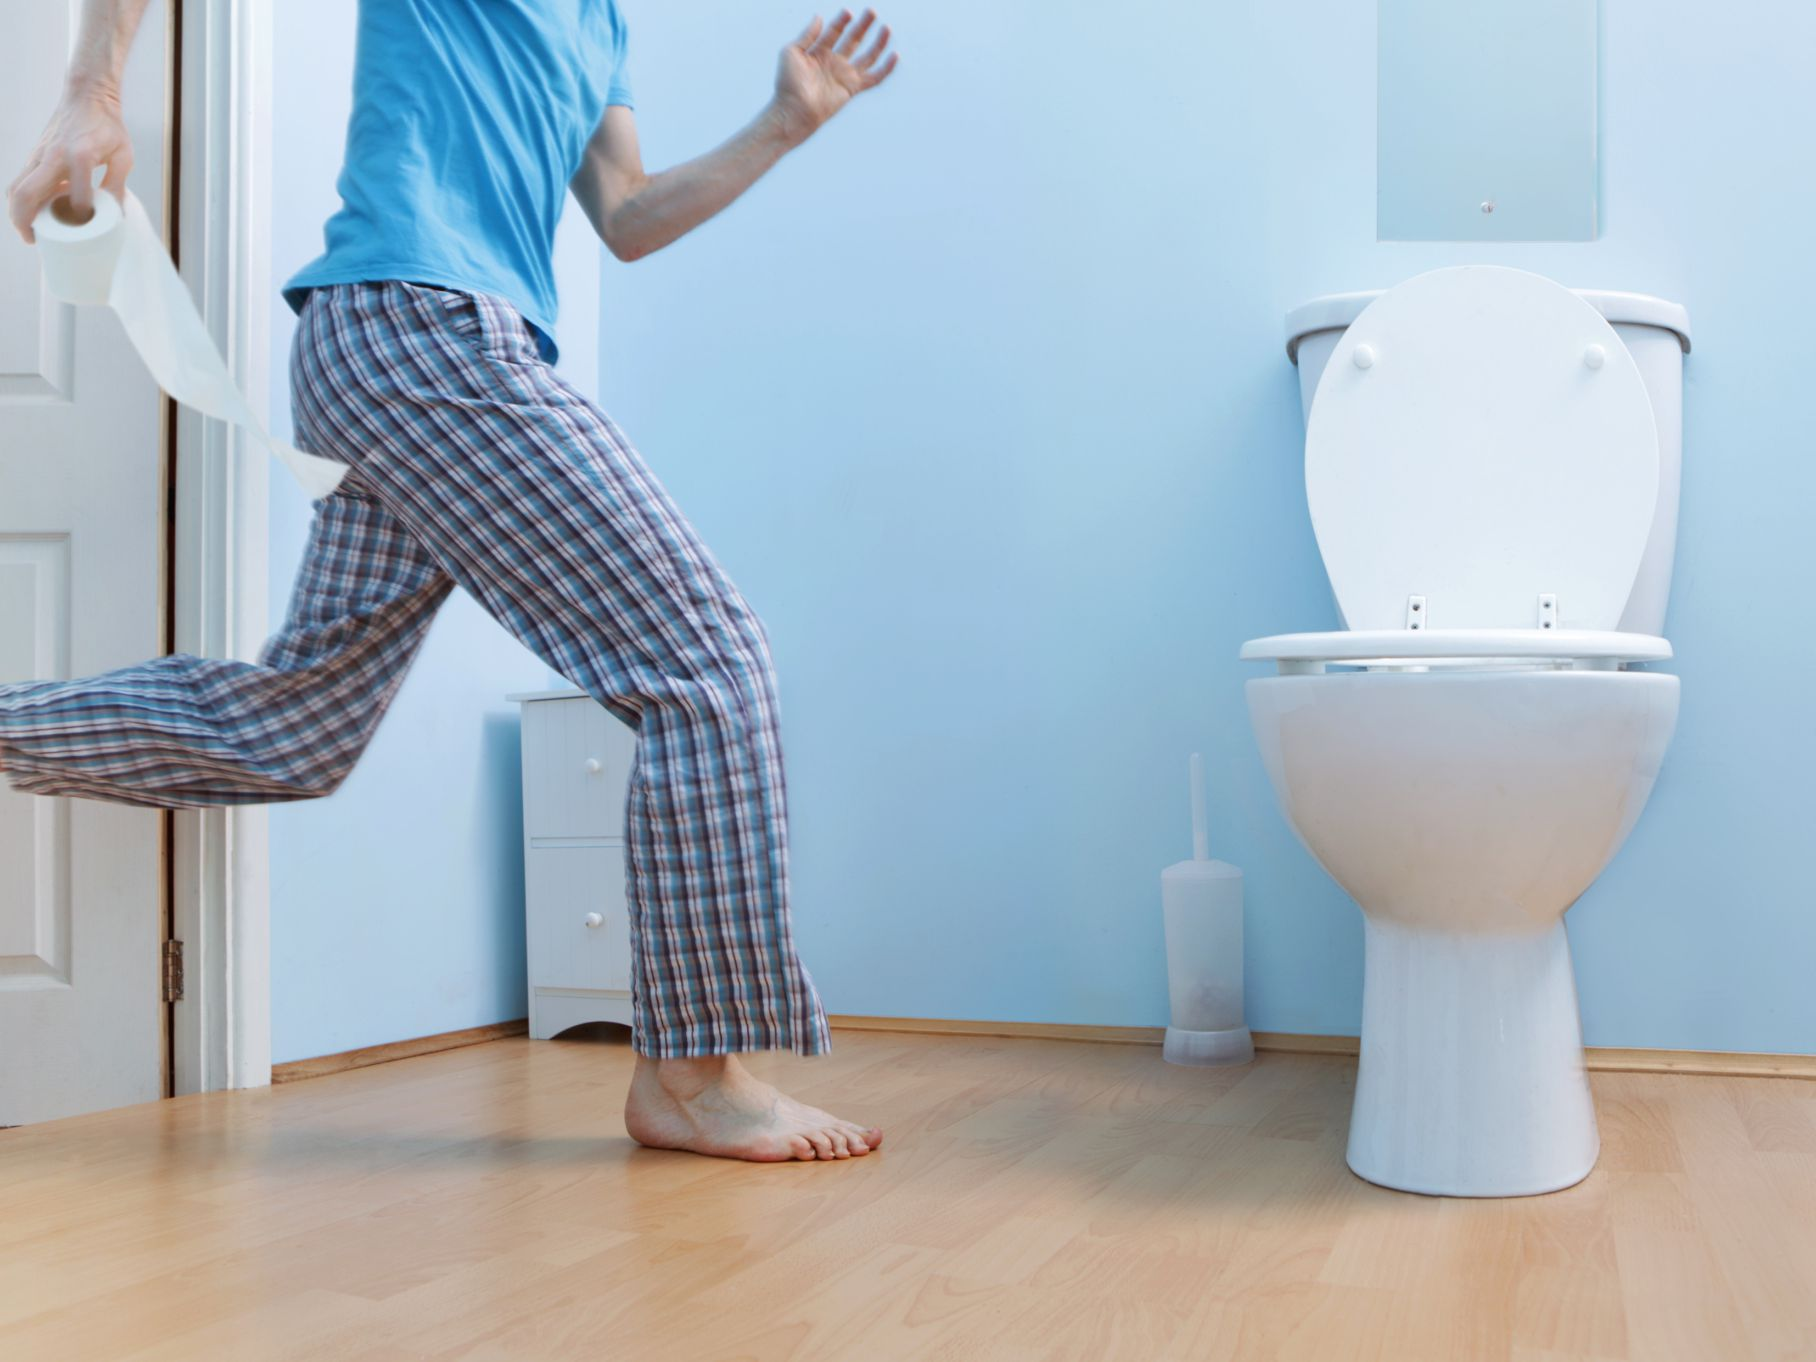 Cholestyramine for Diarrhea: Safety and Side Effects